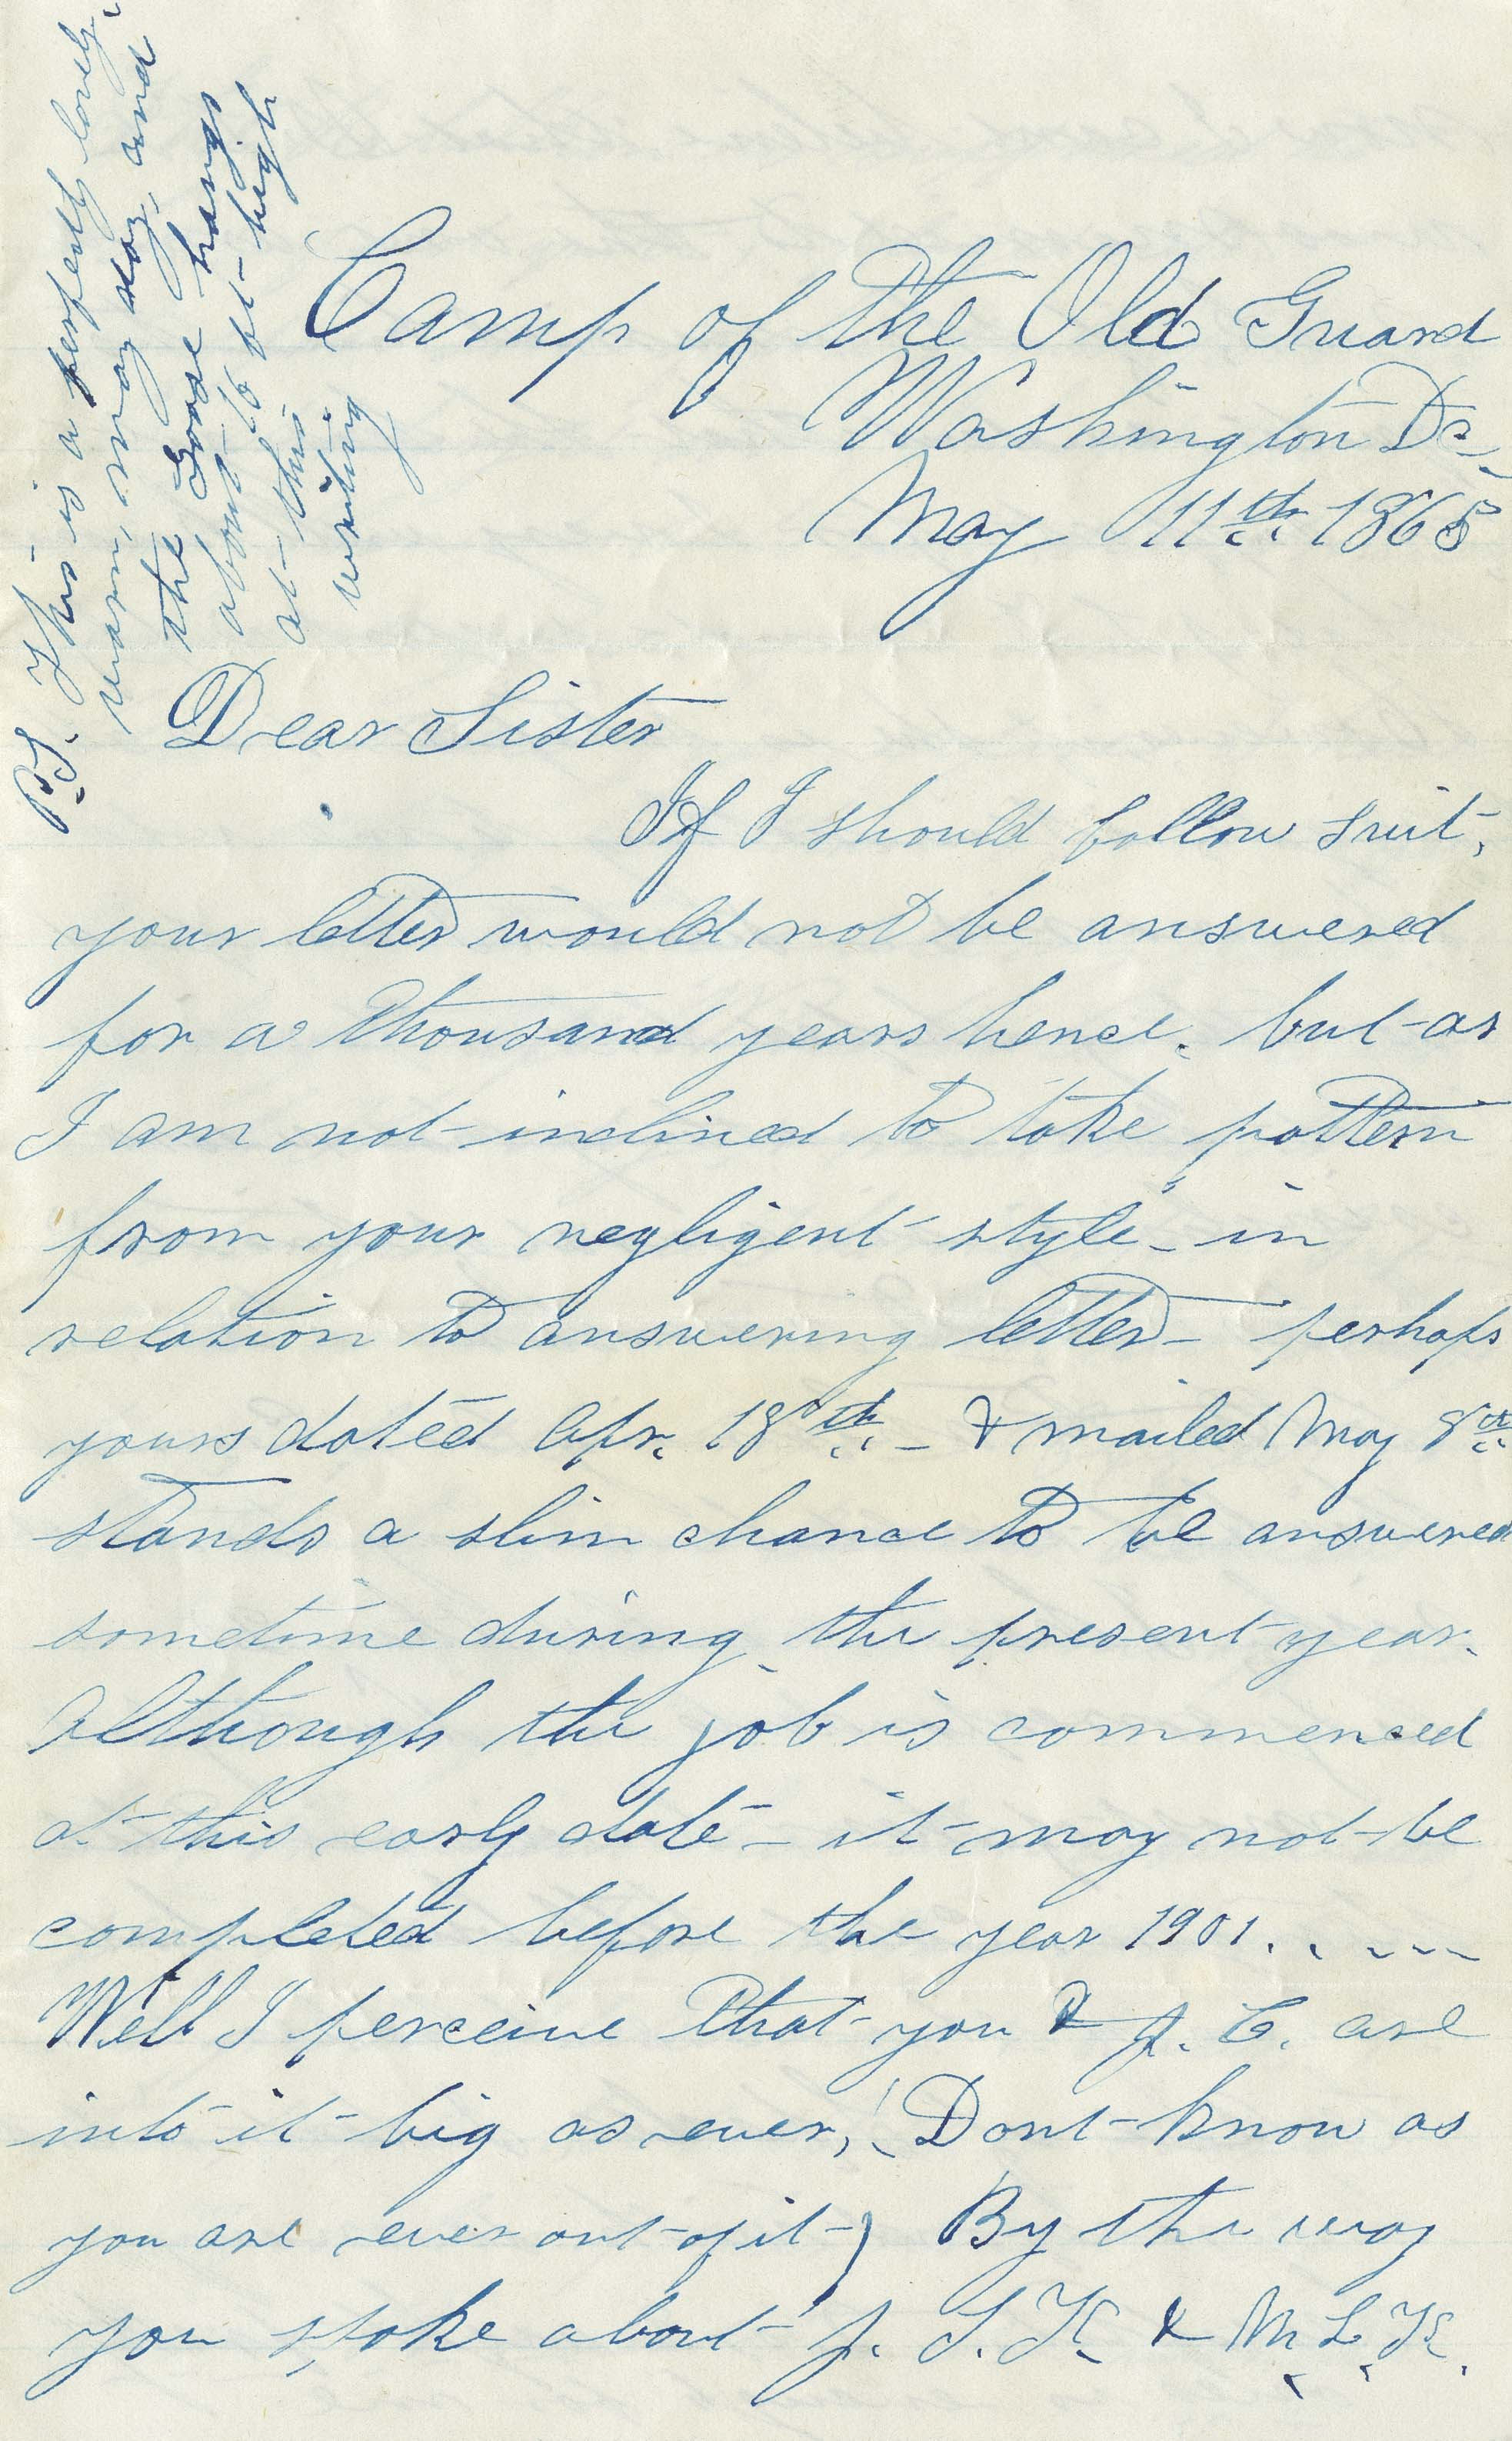 Letter from William H. White to his sister, May 11, 1865